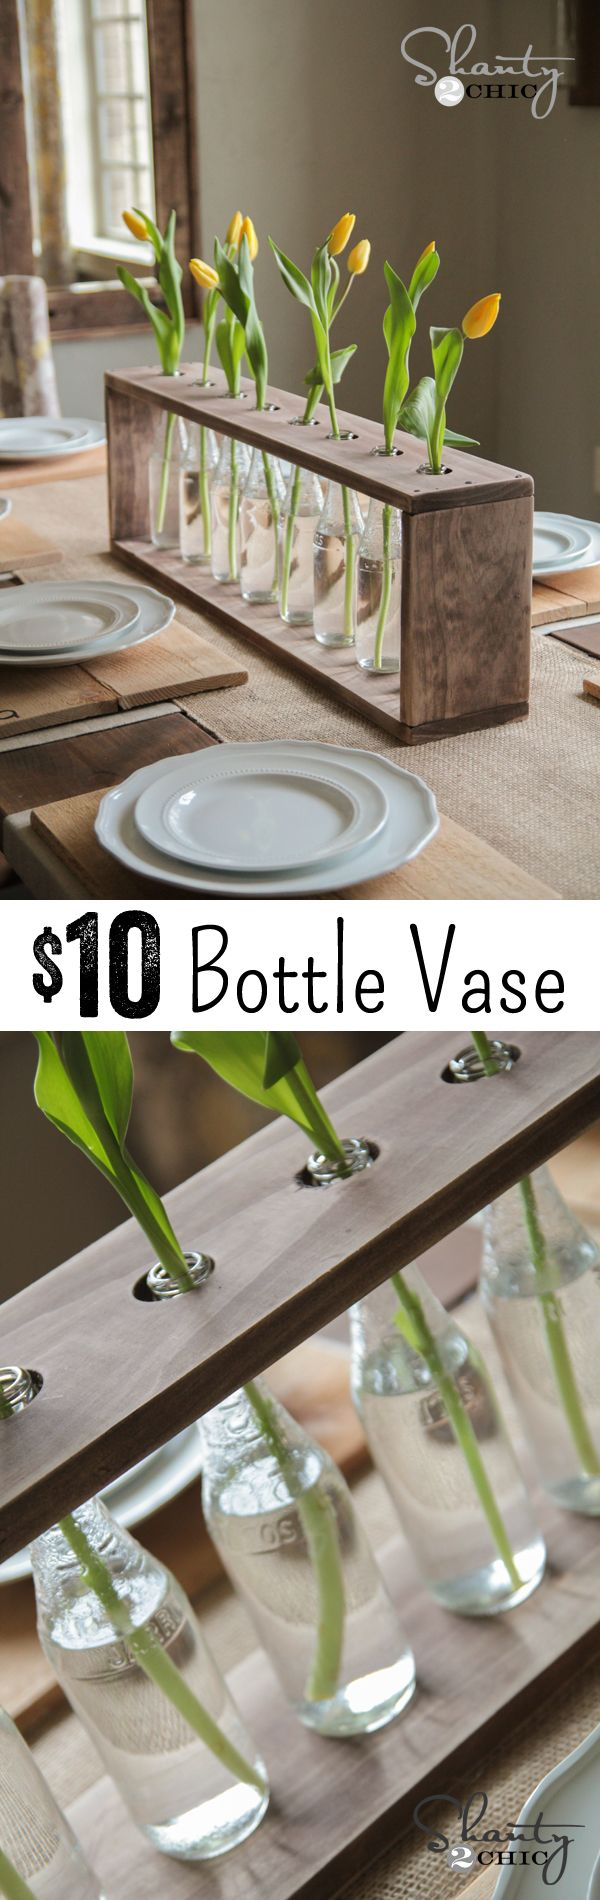 Easy DIY Bottle Vase Centerpiece... LOVE! <3